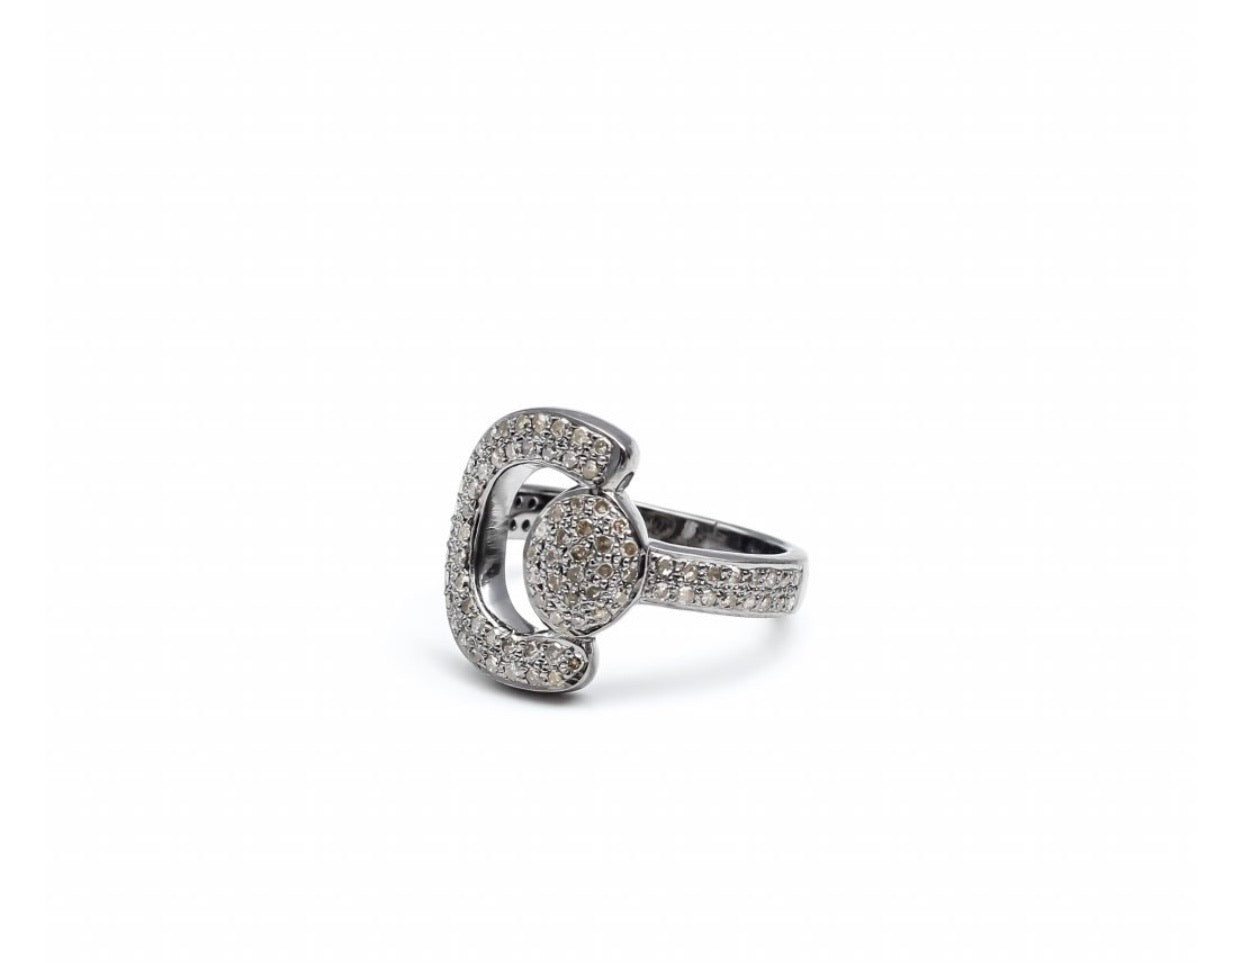 S.Row Designs Pave Diamond Horsebit Ring